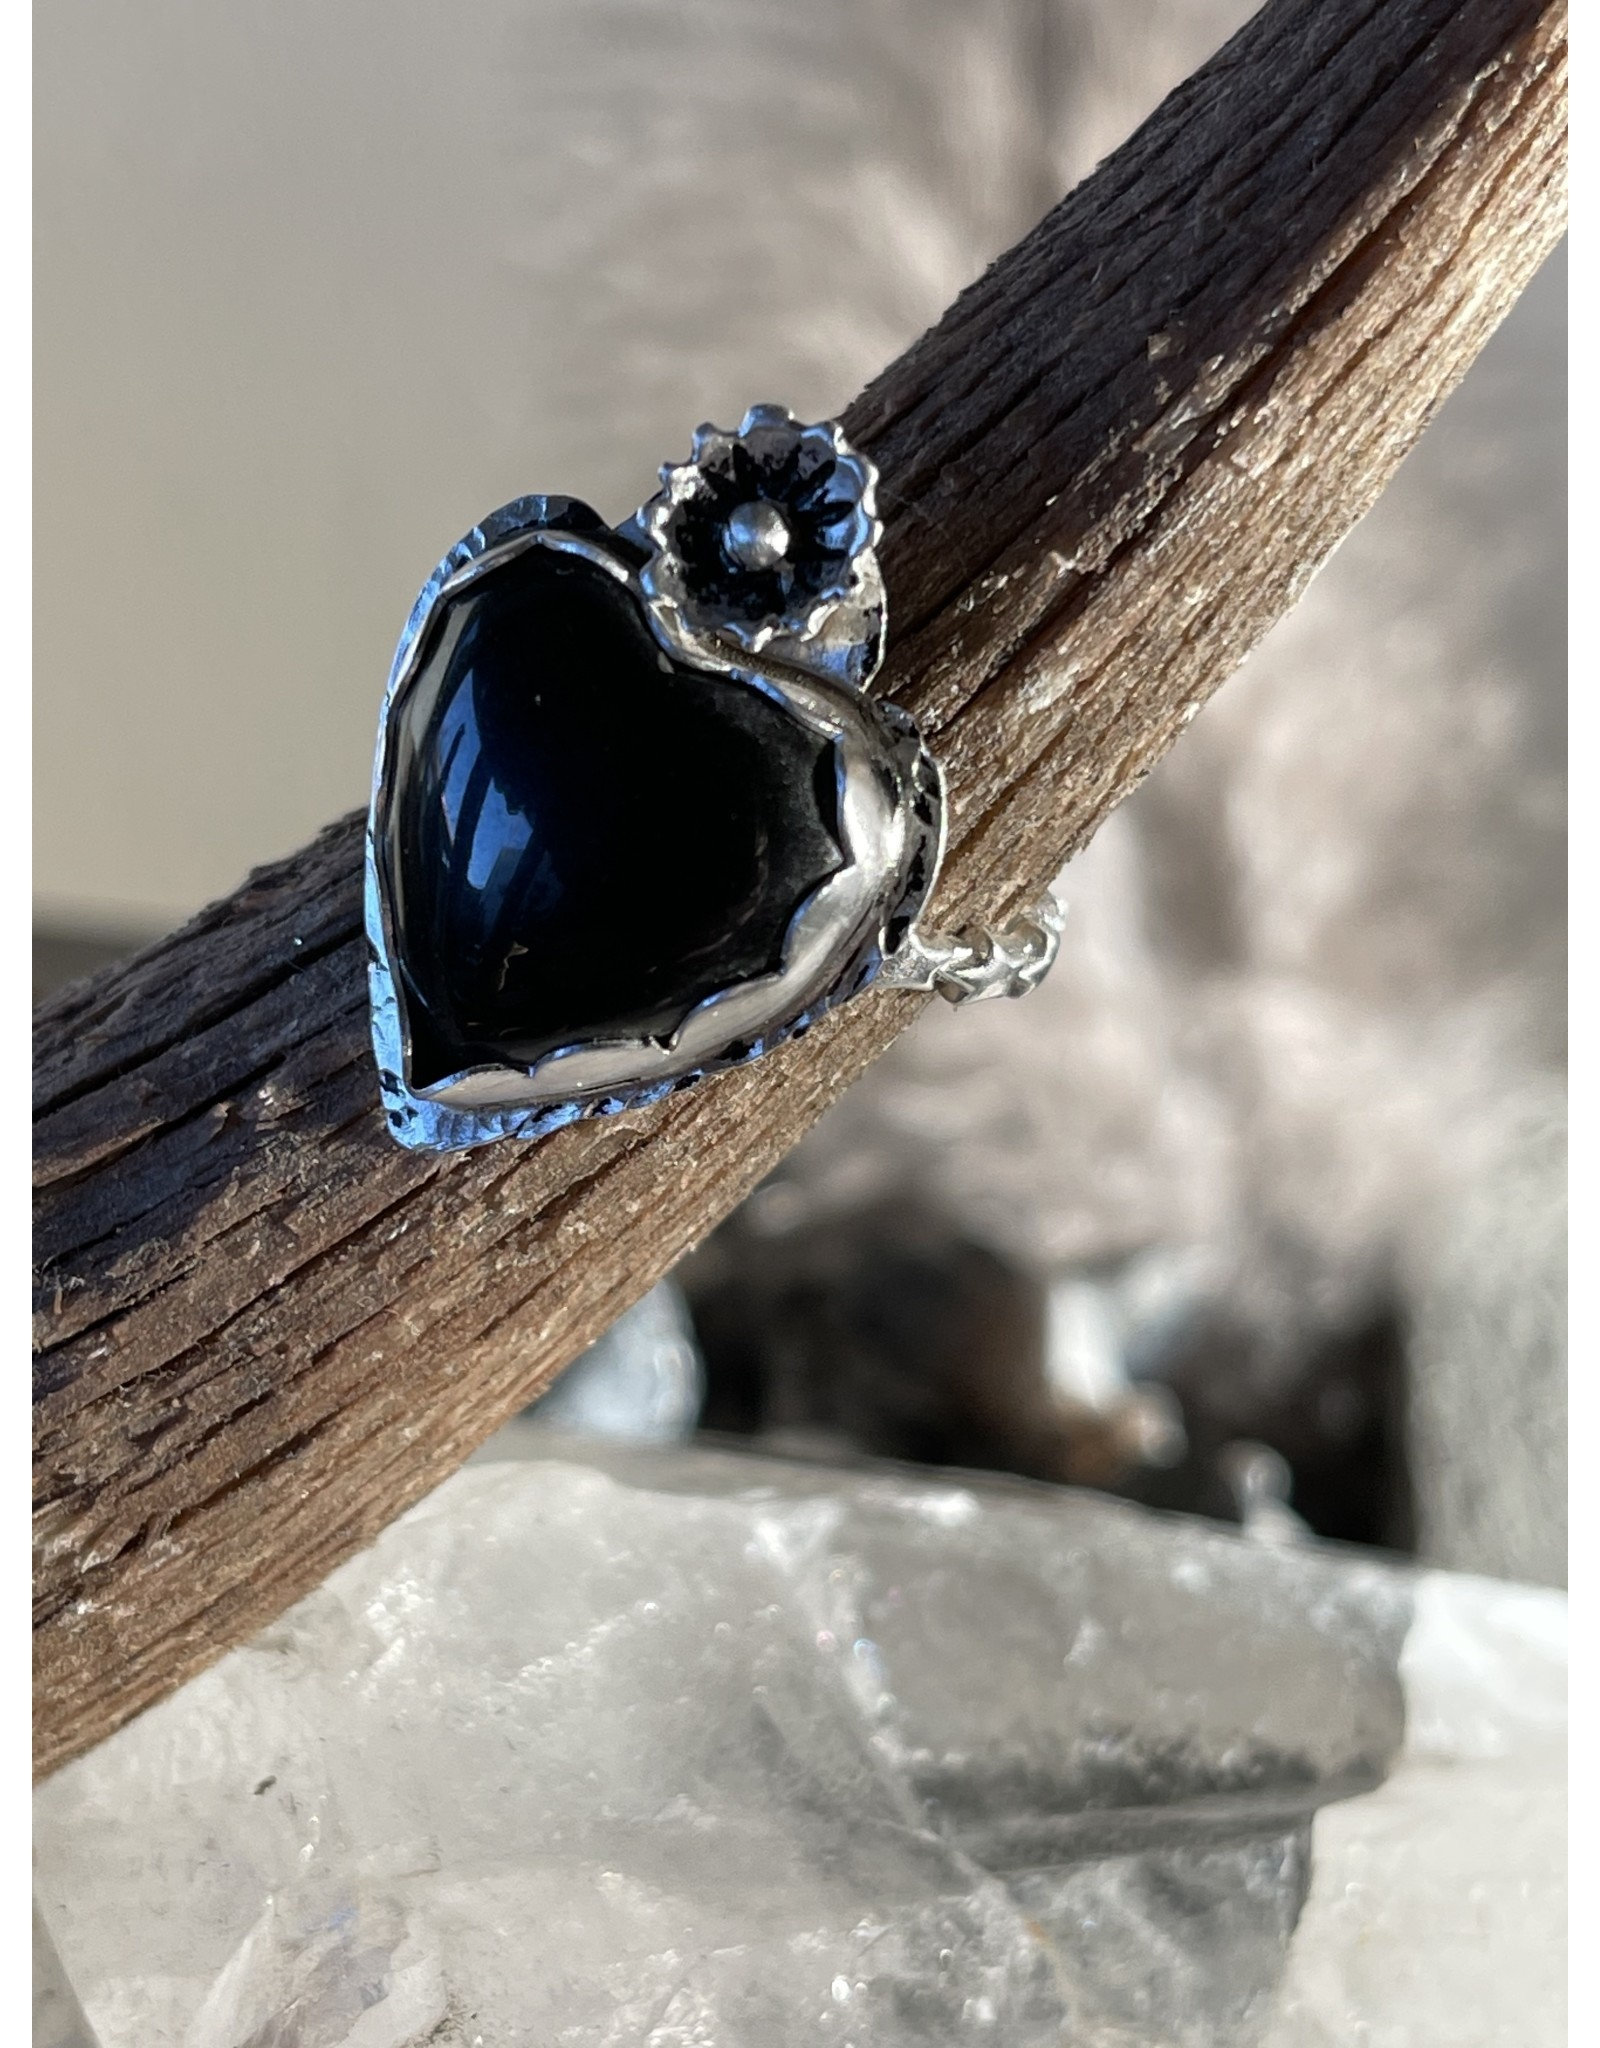 Annette Colby - Jeweler Black Onyx Heart Ring with Flower Size 6.75 by Annette Colby